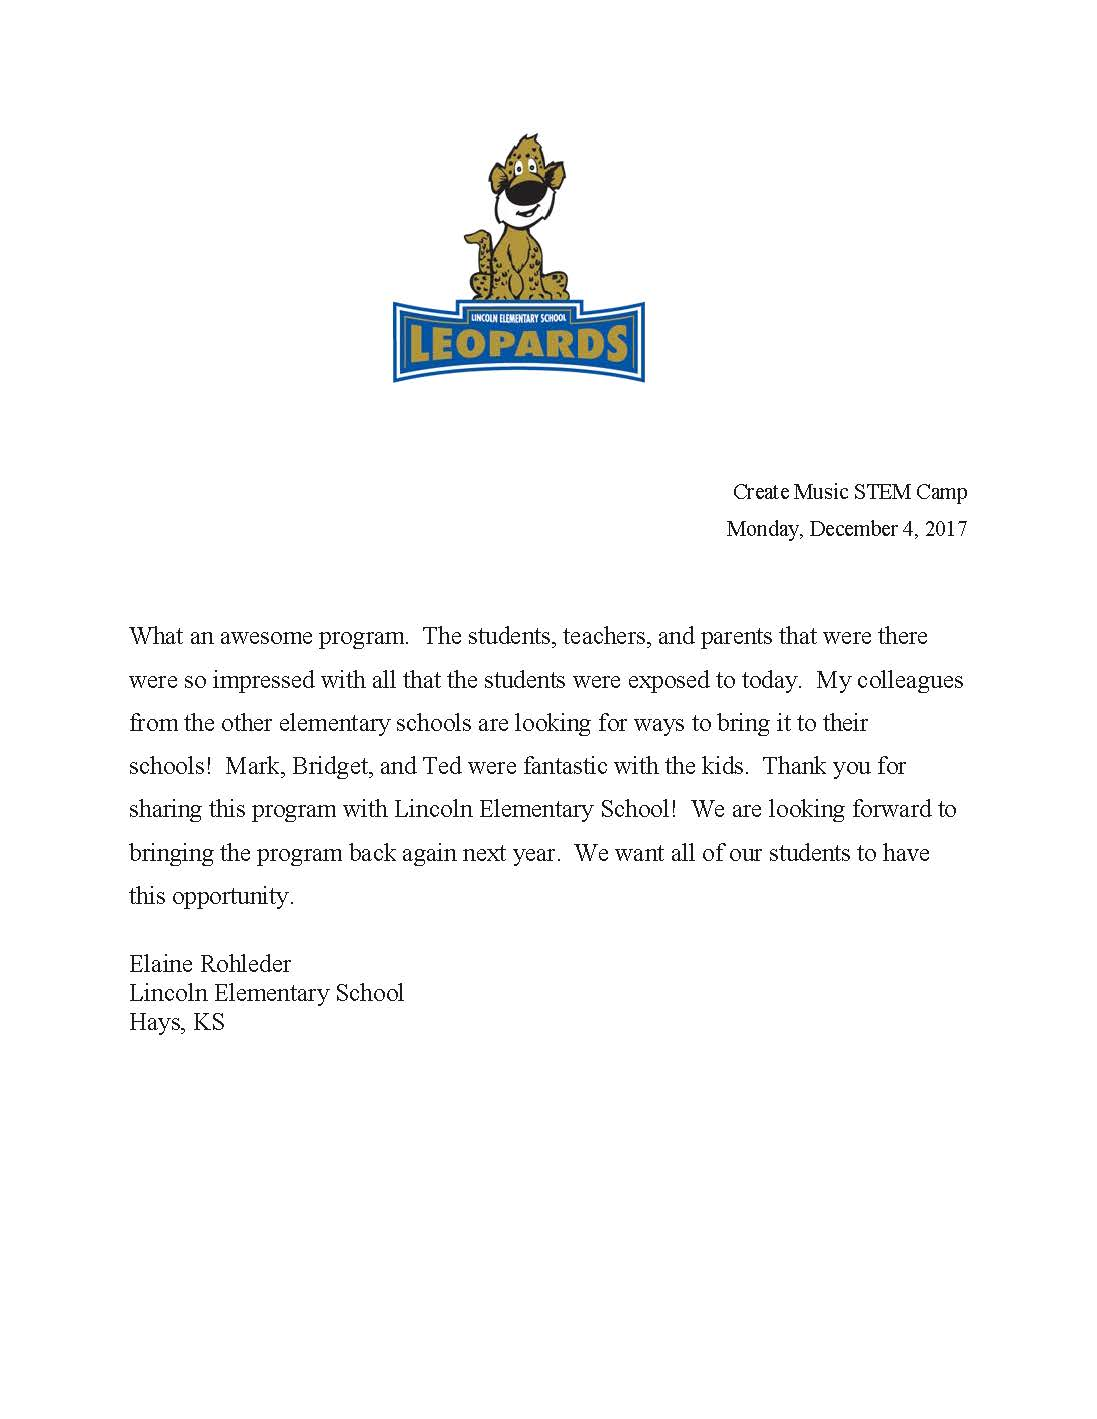 Lincoln Elementary Reference Letter